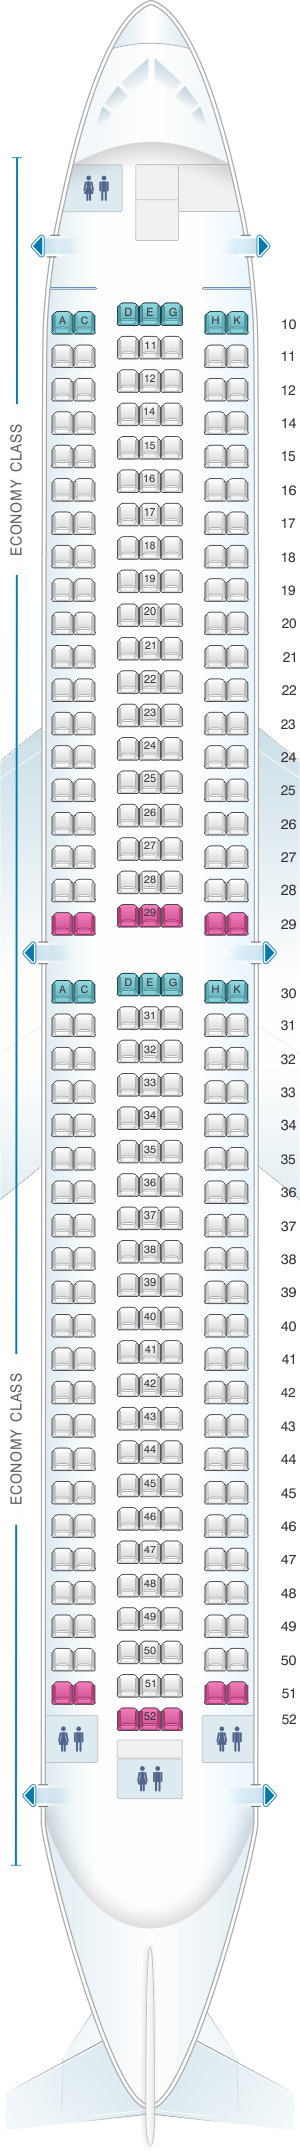 Seat map for Asiana Airlines Boeing B767 300 290PAX